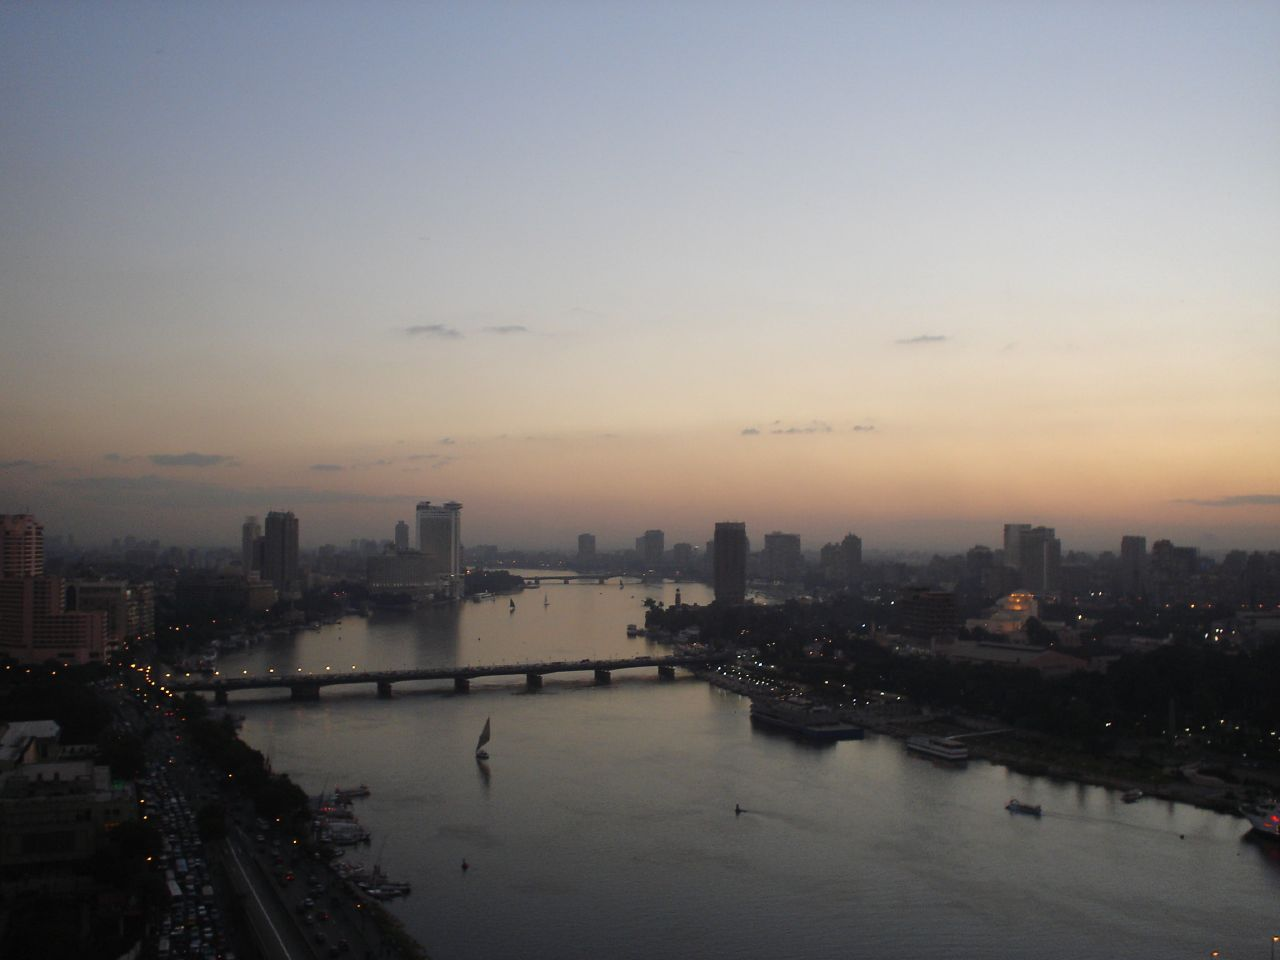 Cairo, Egypt. Picture by Tarek Siala | Flickr